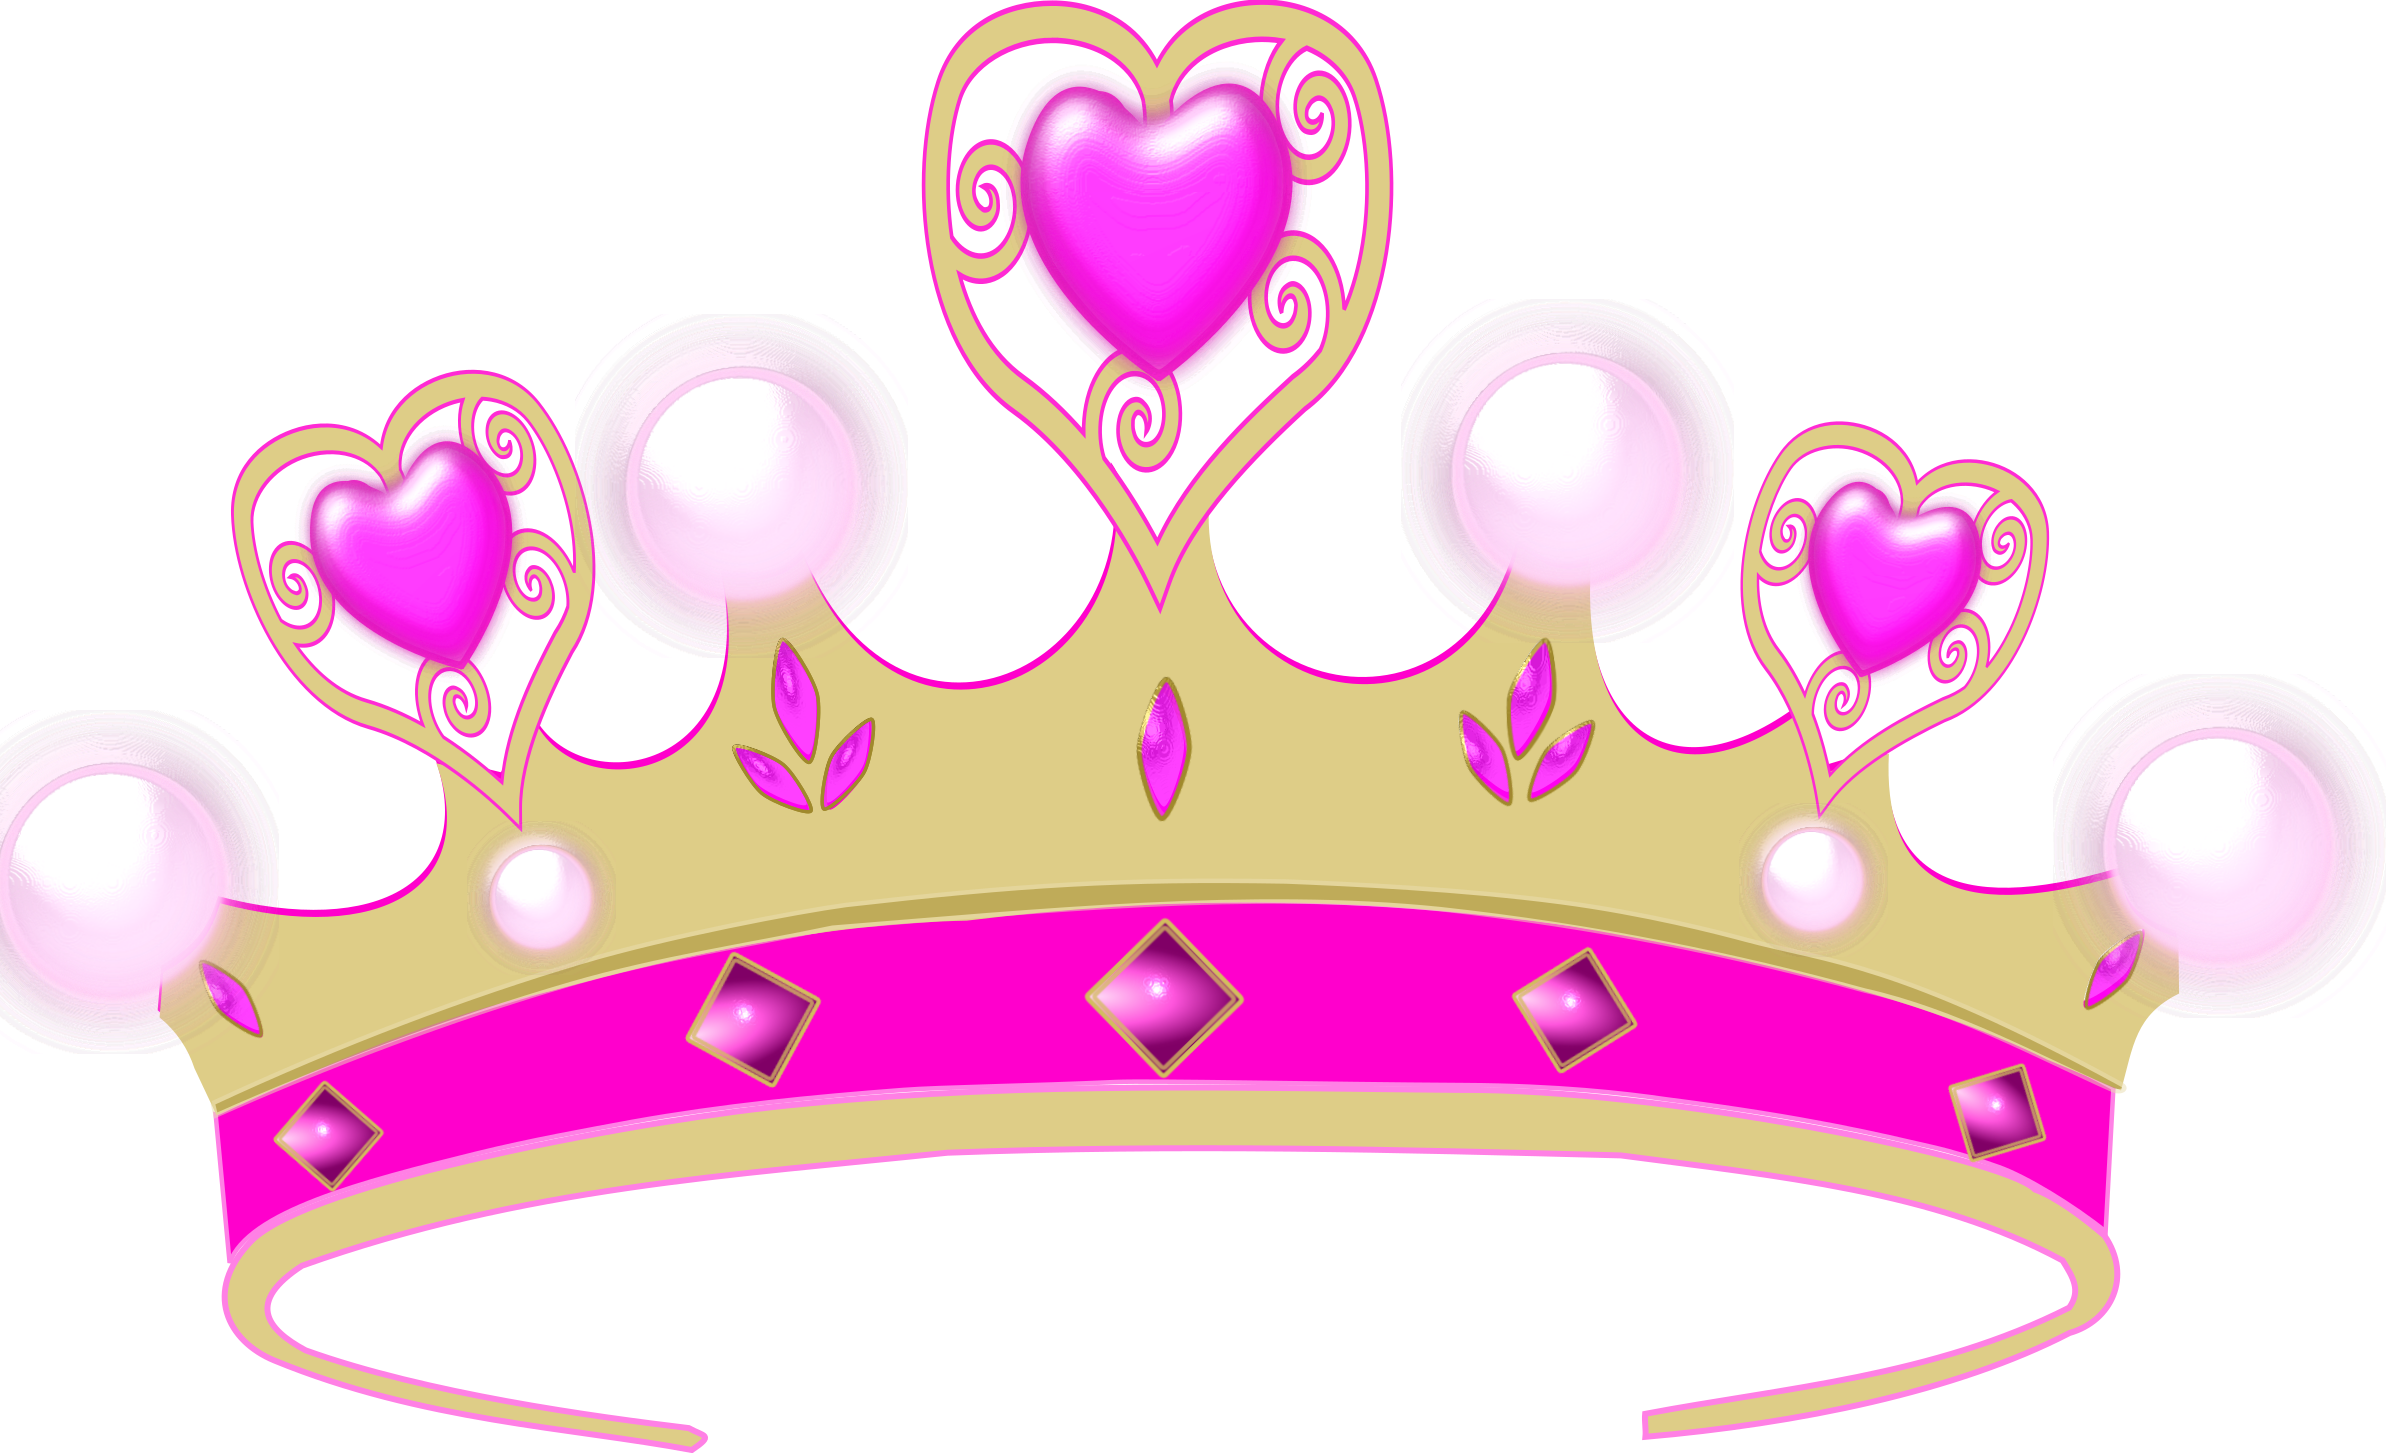 Girls crown clipart clip art freeuse stock 28+ Collection of Pink Princess Crown Clipart | High quality, free ... clip art freeuse stock